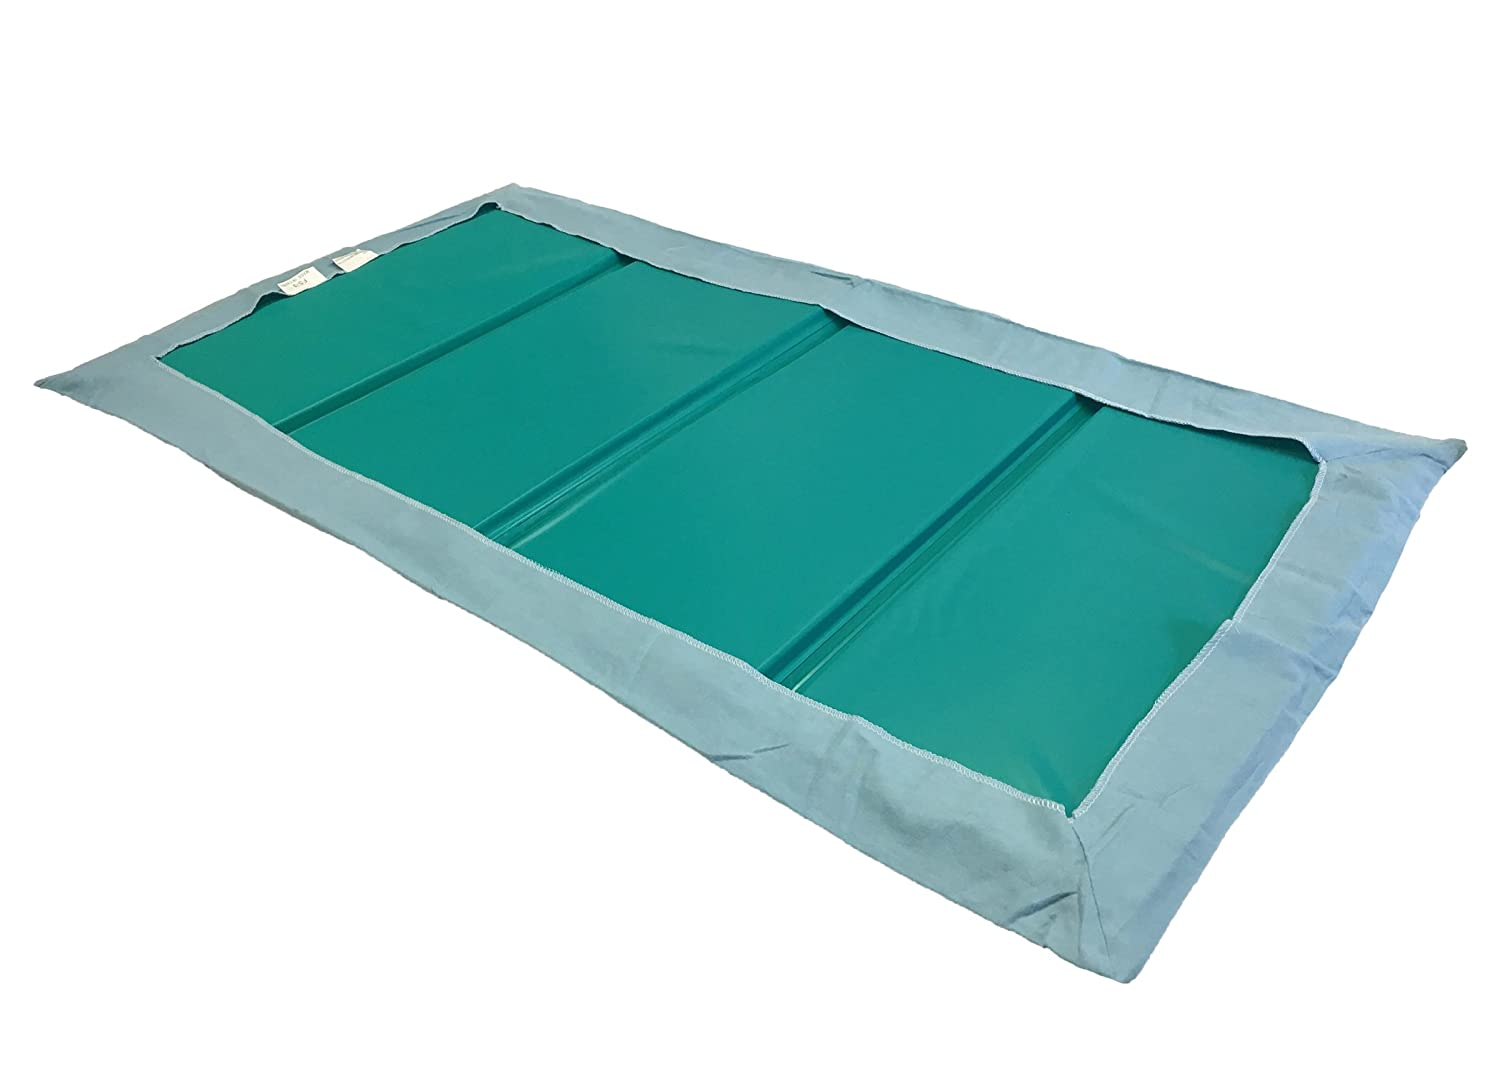 Amazon KinderMat Fitted Sheets For Folding Mats 2 Pack Large Sports Outdoors